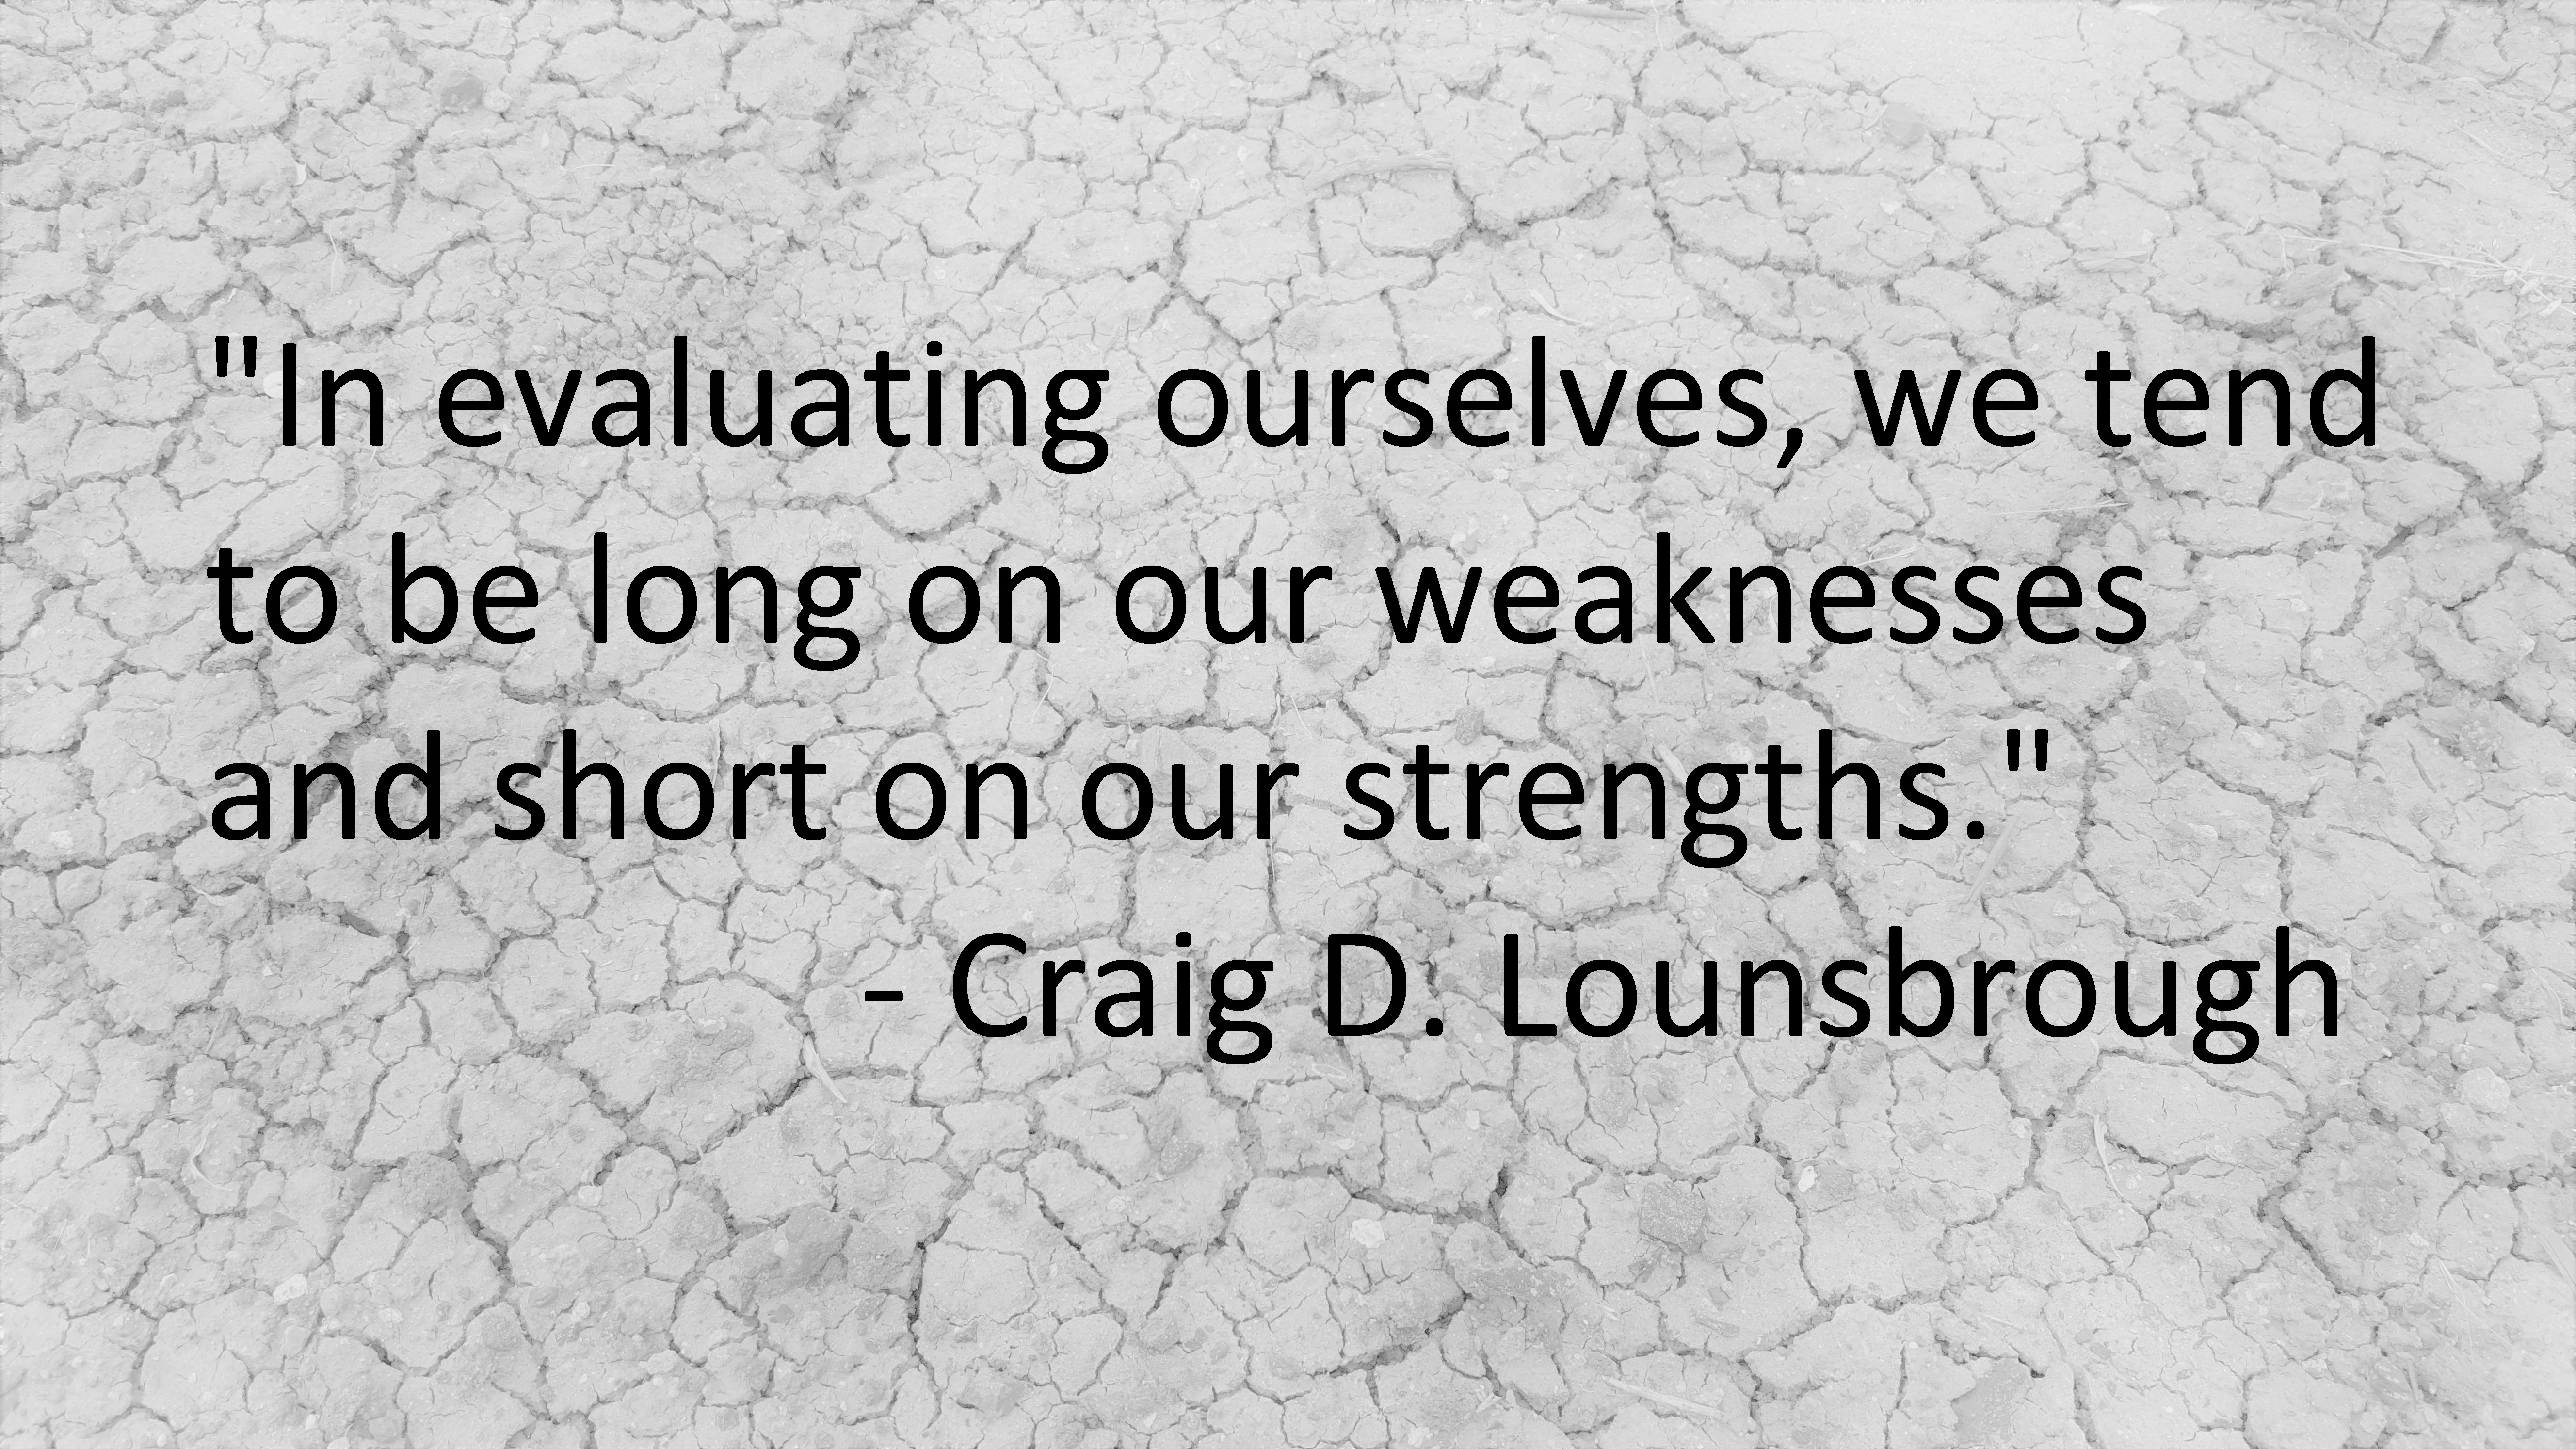 Craig Lounsbrough - We focus more on our weaknesses